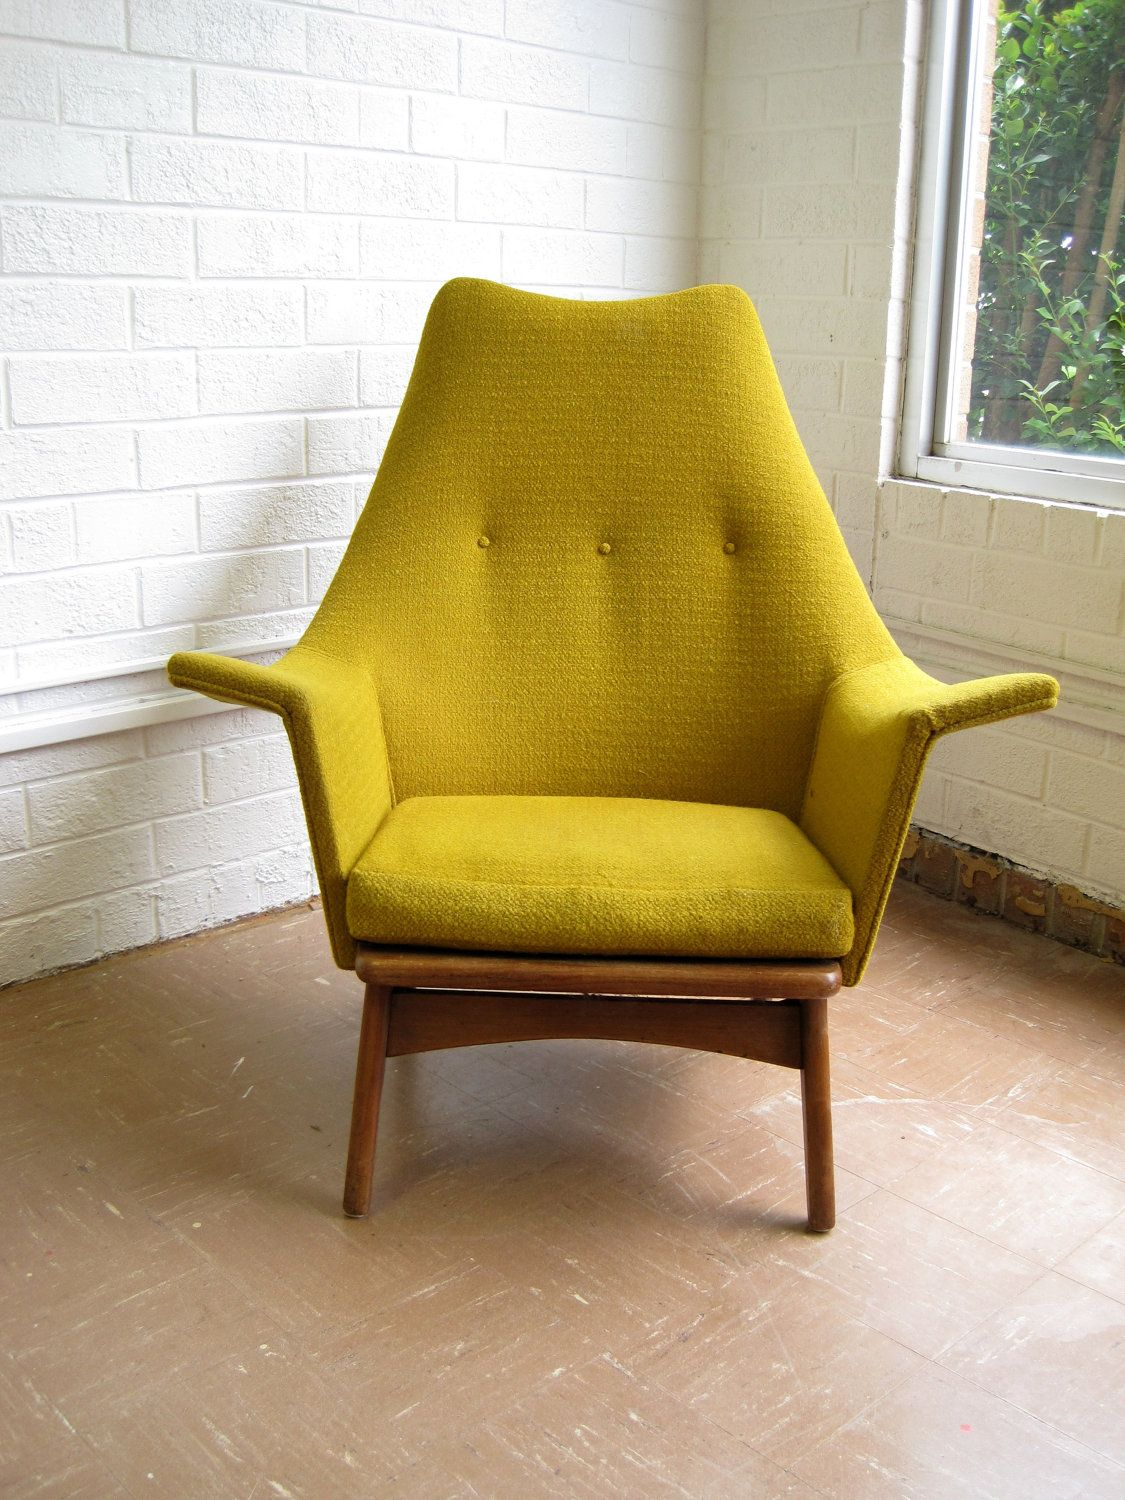 Mid Century Modern Lounge Chair in Mustard Yellow